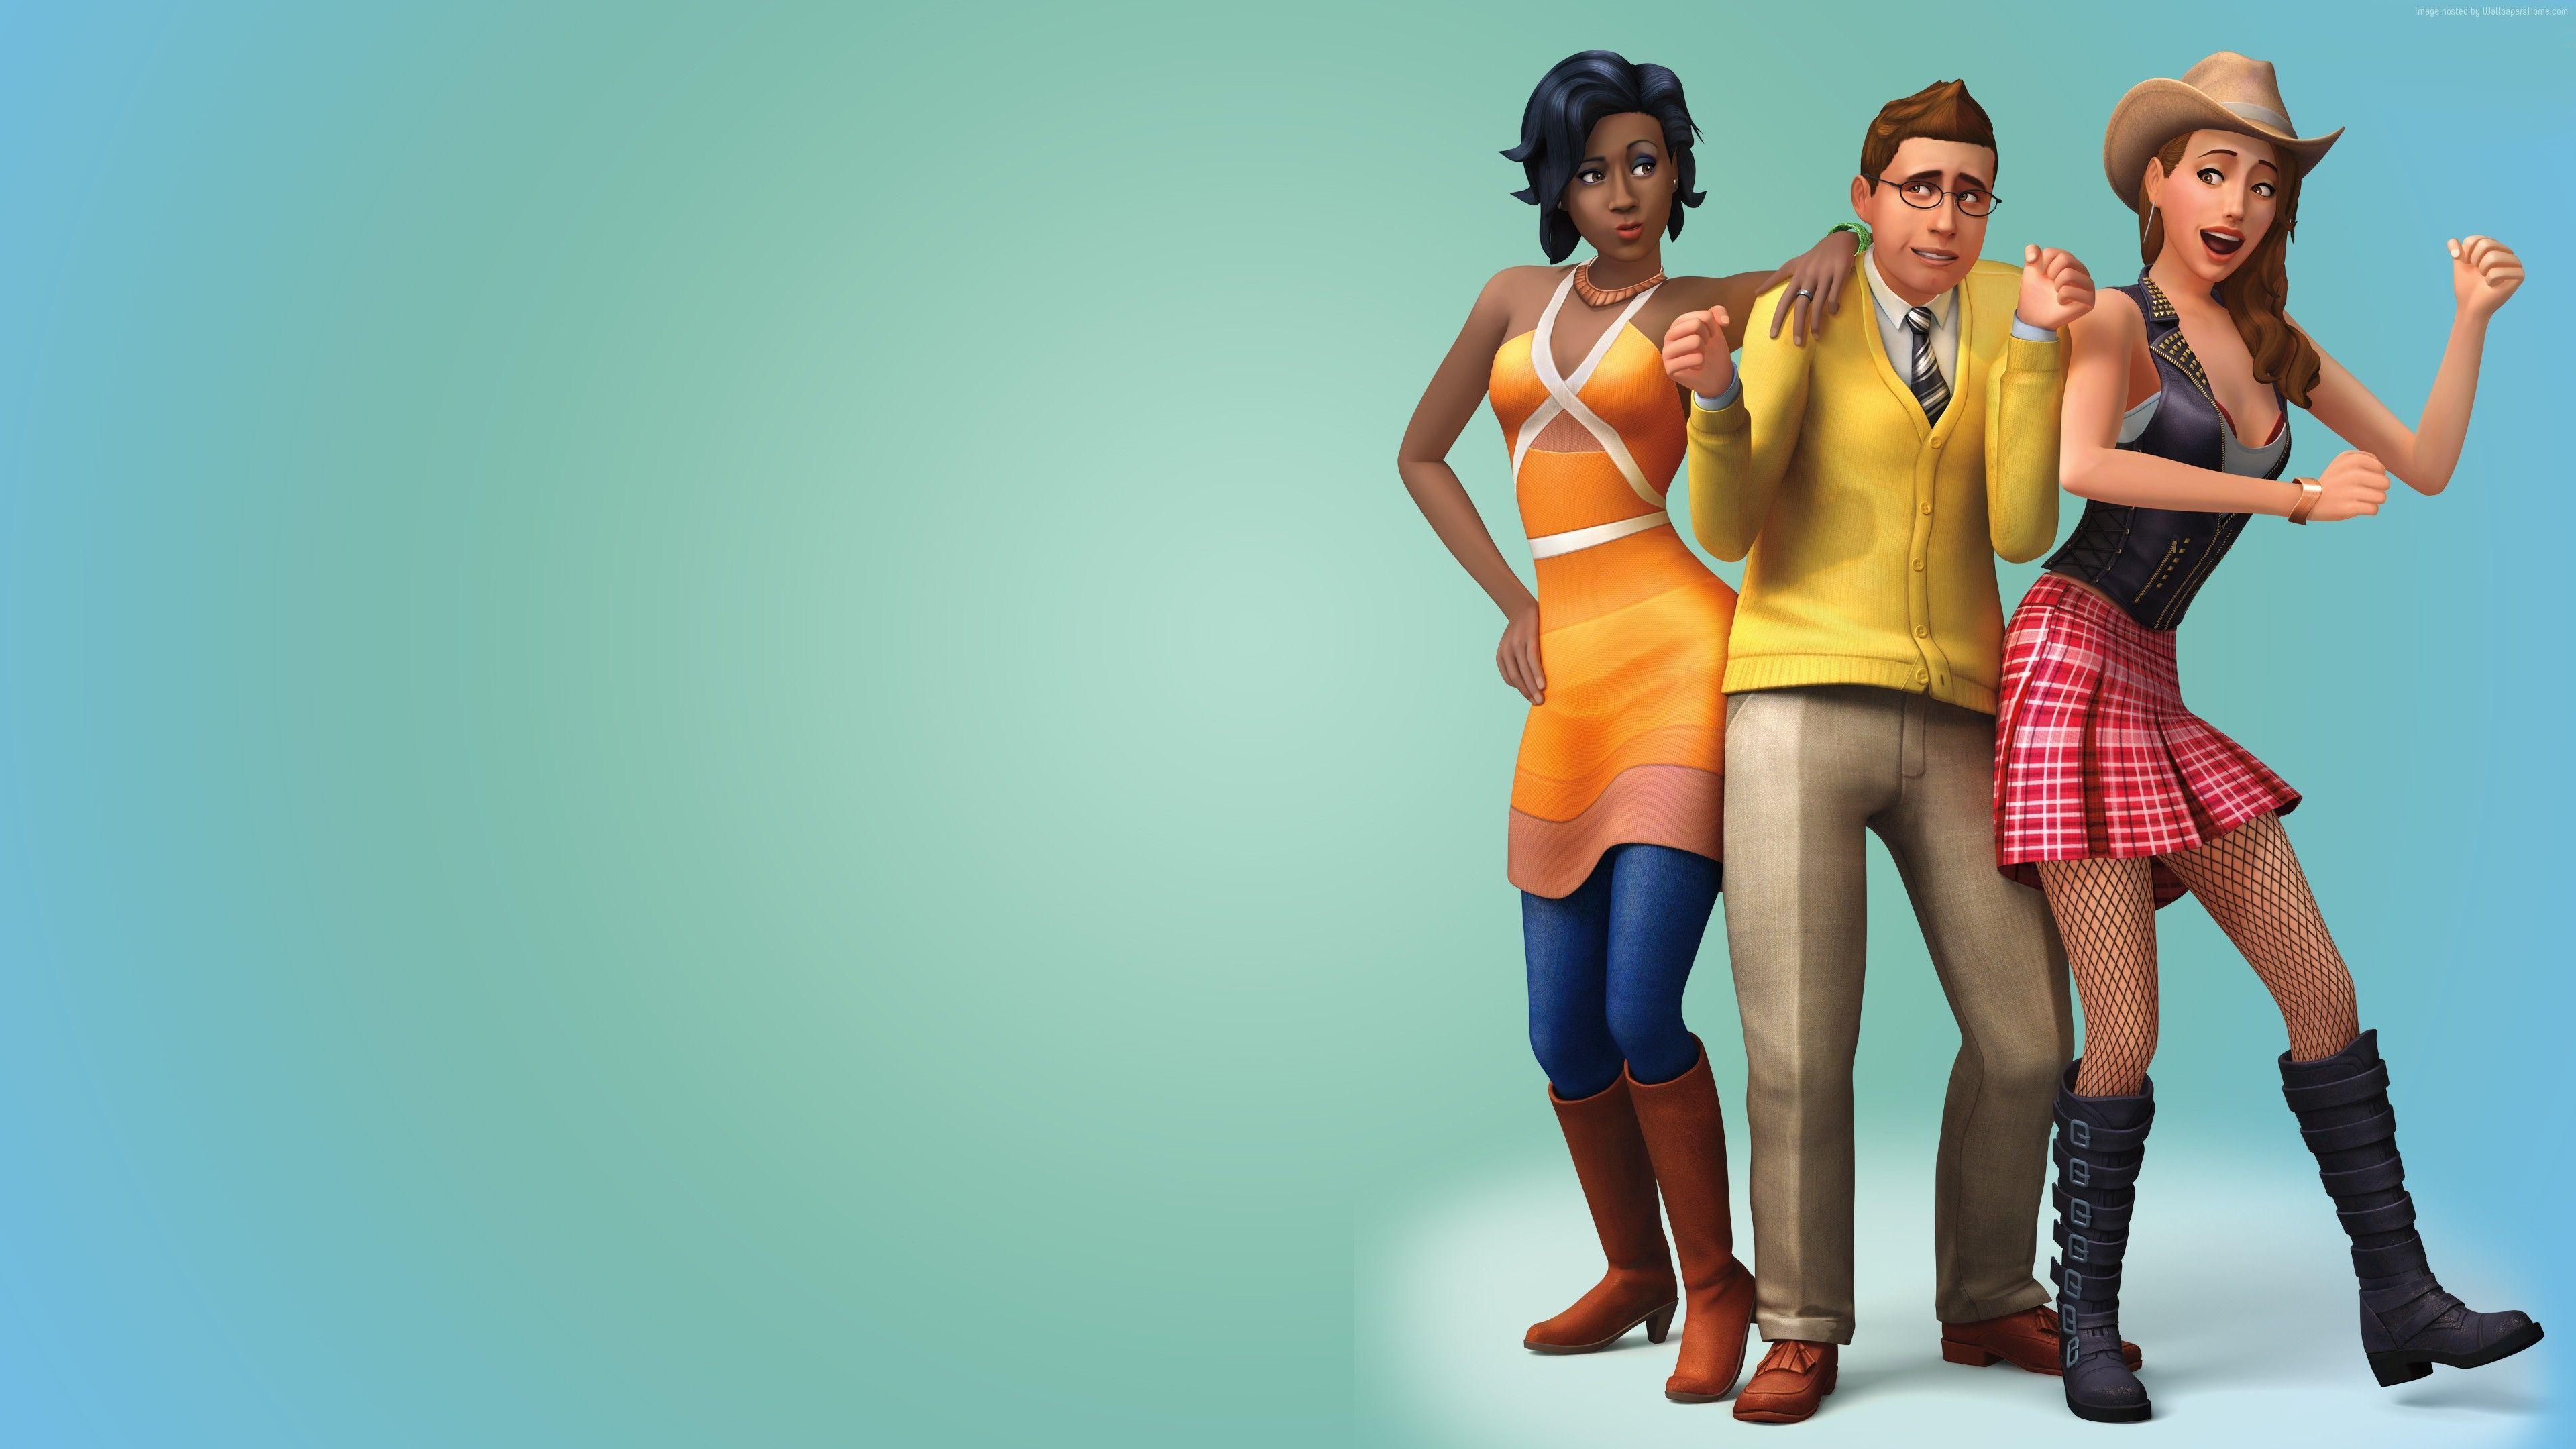 The Sims 4: Get to Work Wallpaper, Games: The Sims 4: Get to Work